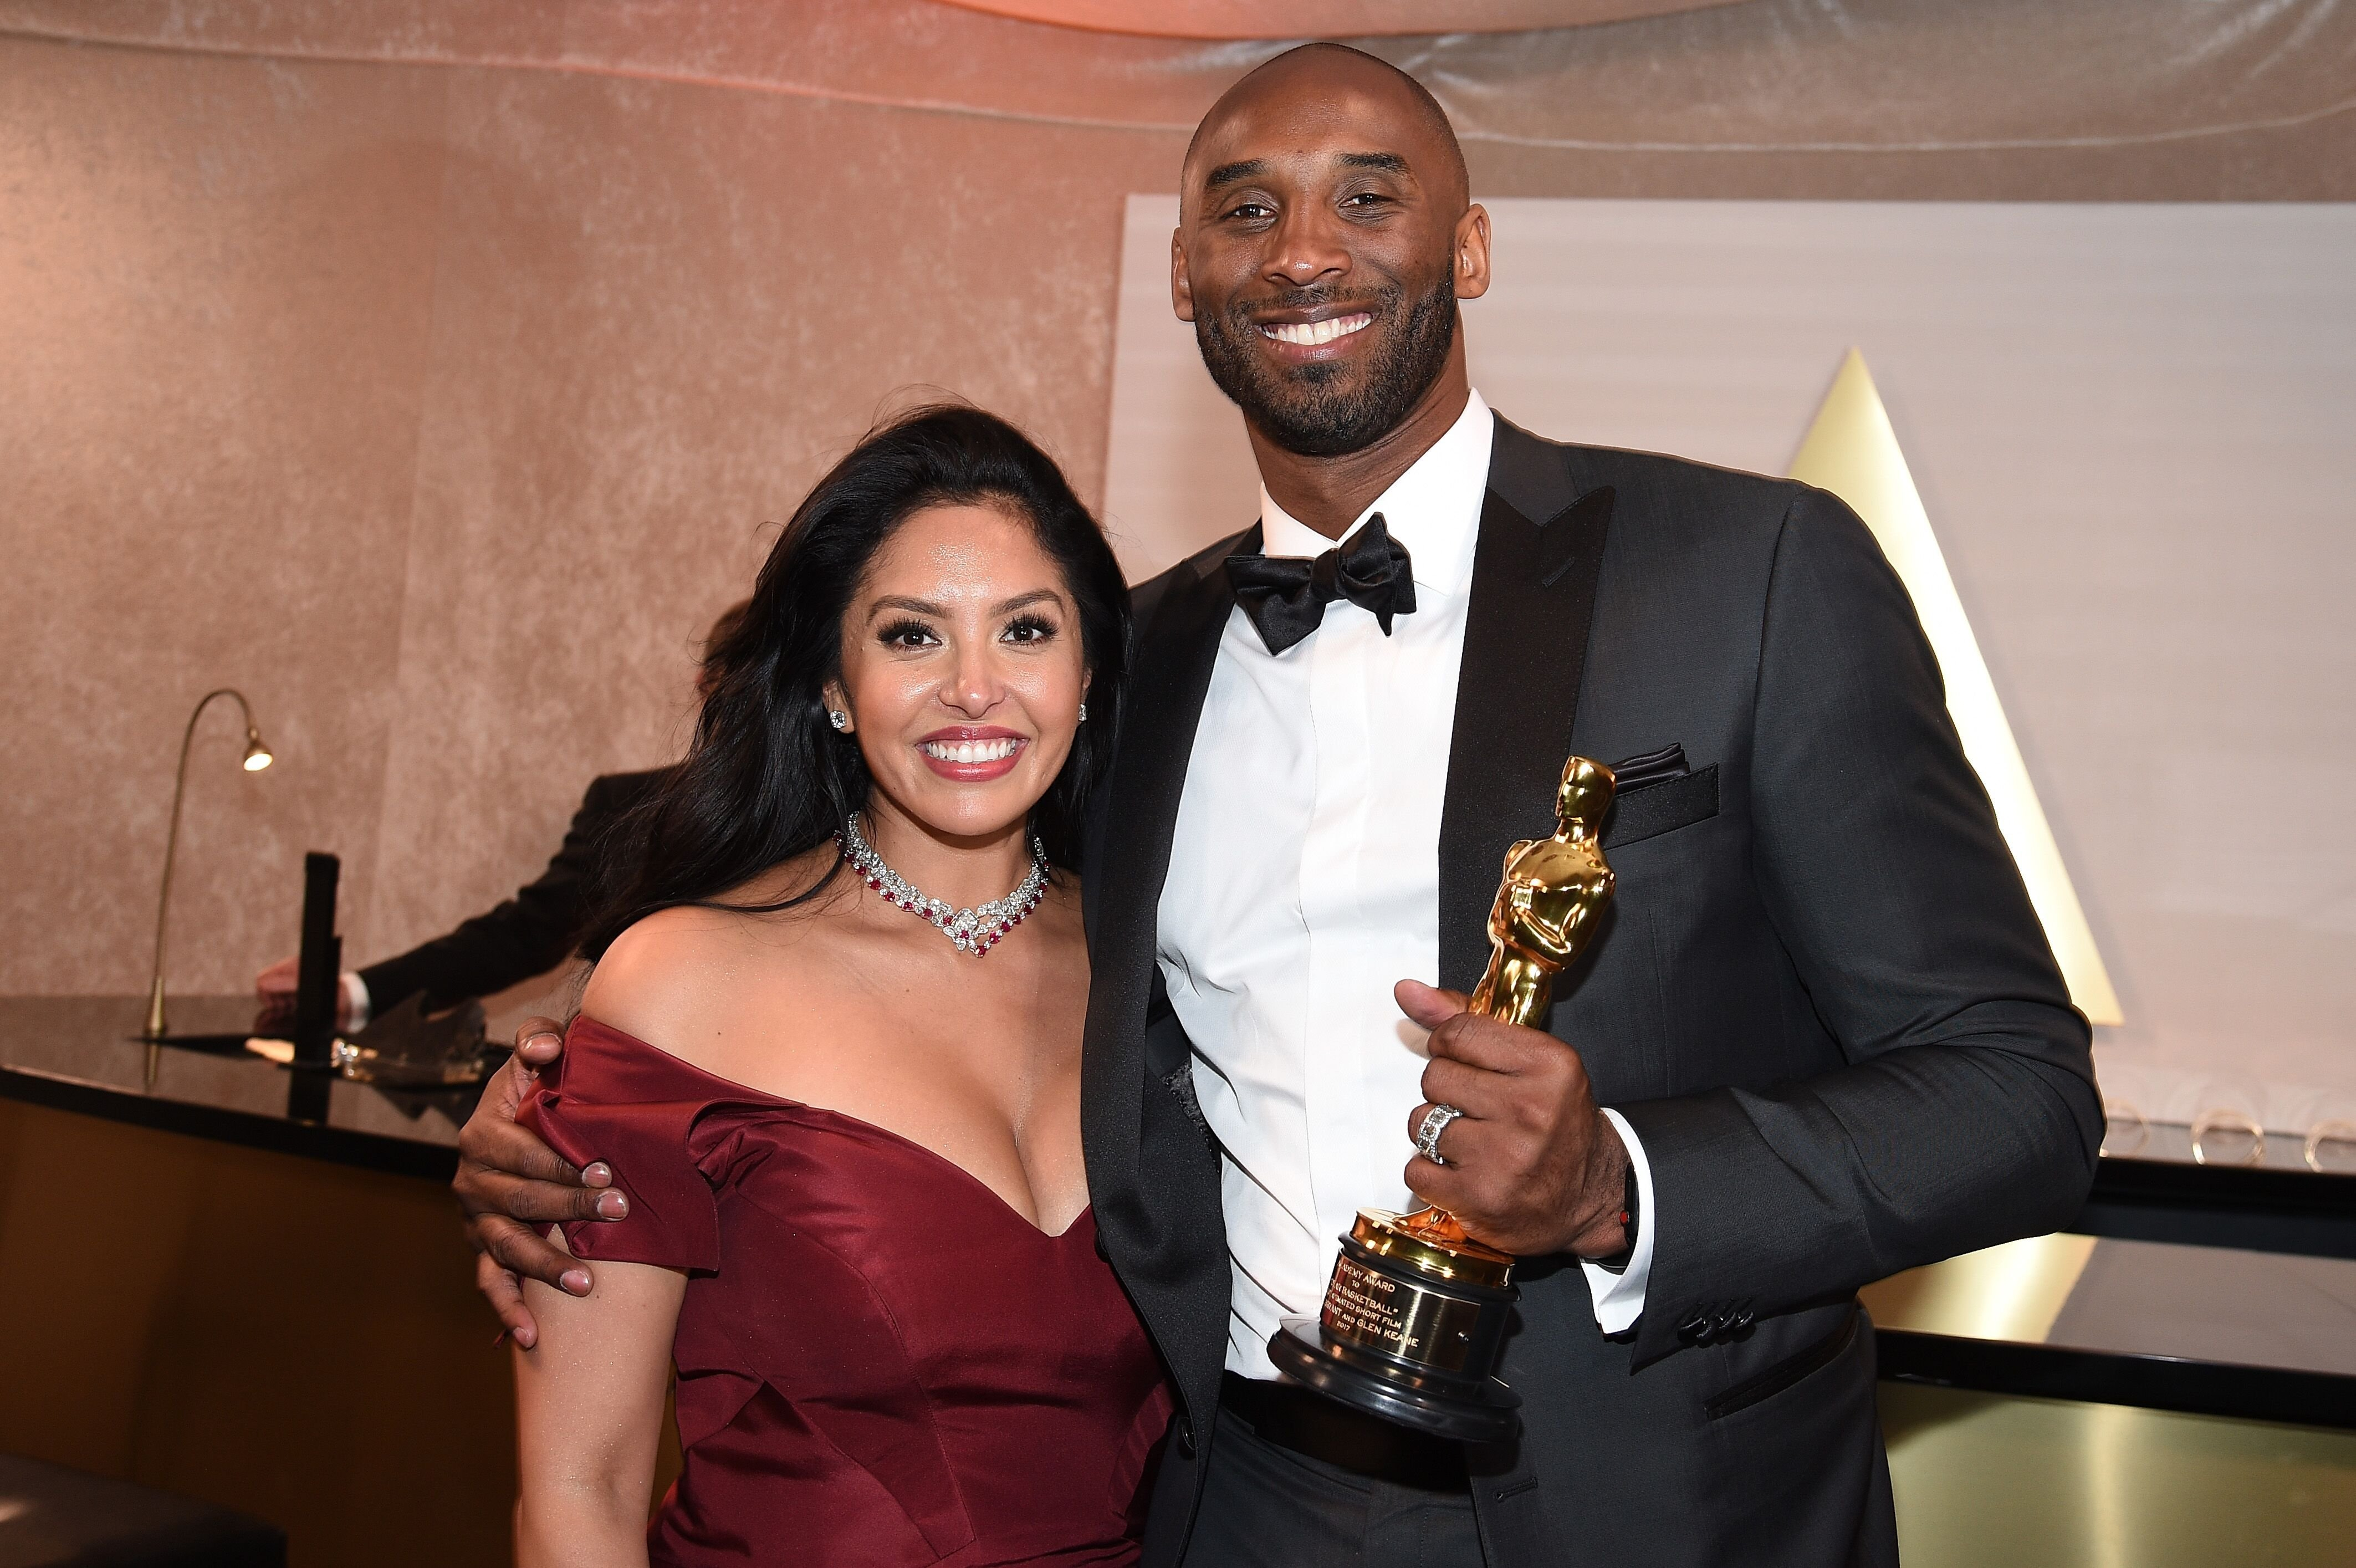 Kobe Bryant and wife Vanessa at the 90th Annual Academy Awards Governors Ball/ Source: Getty Images